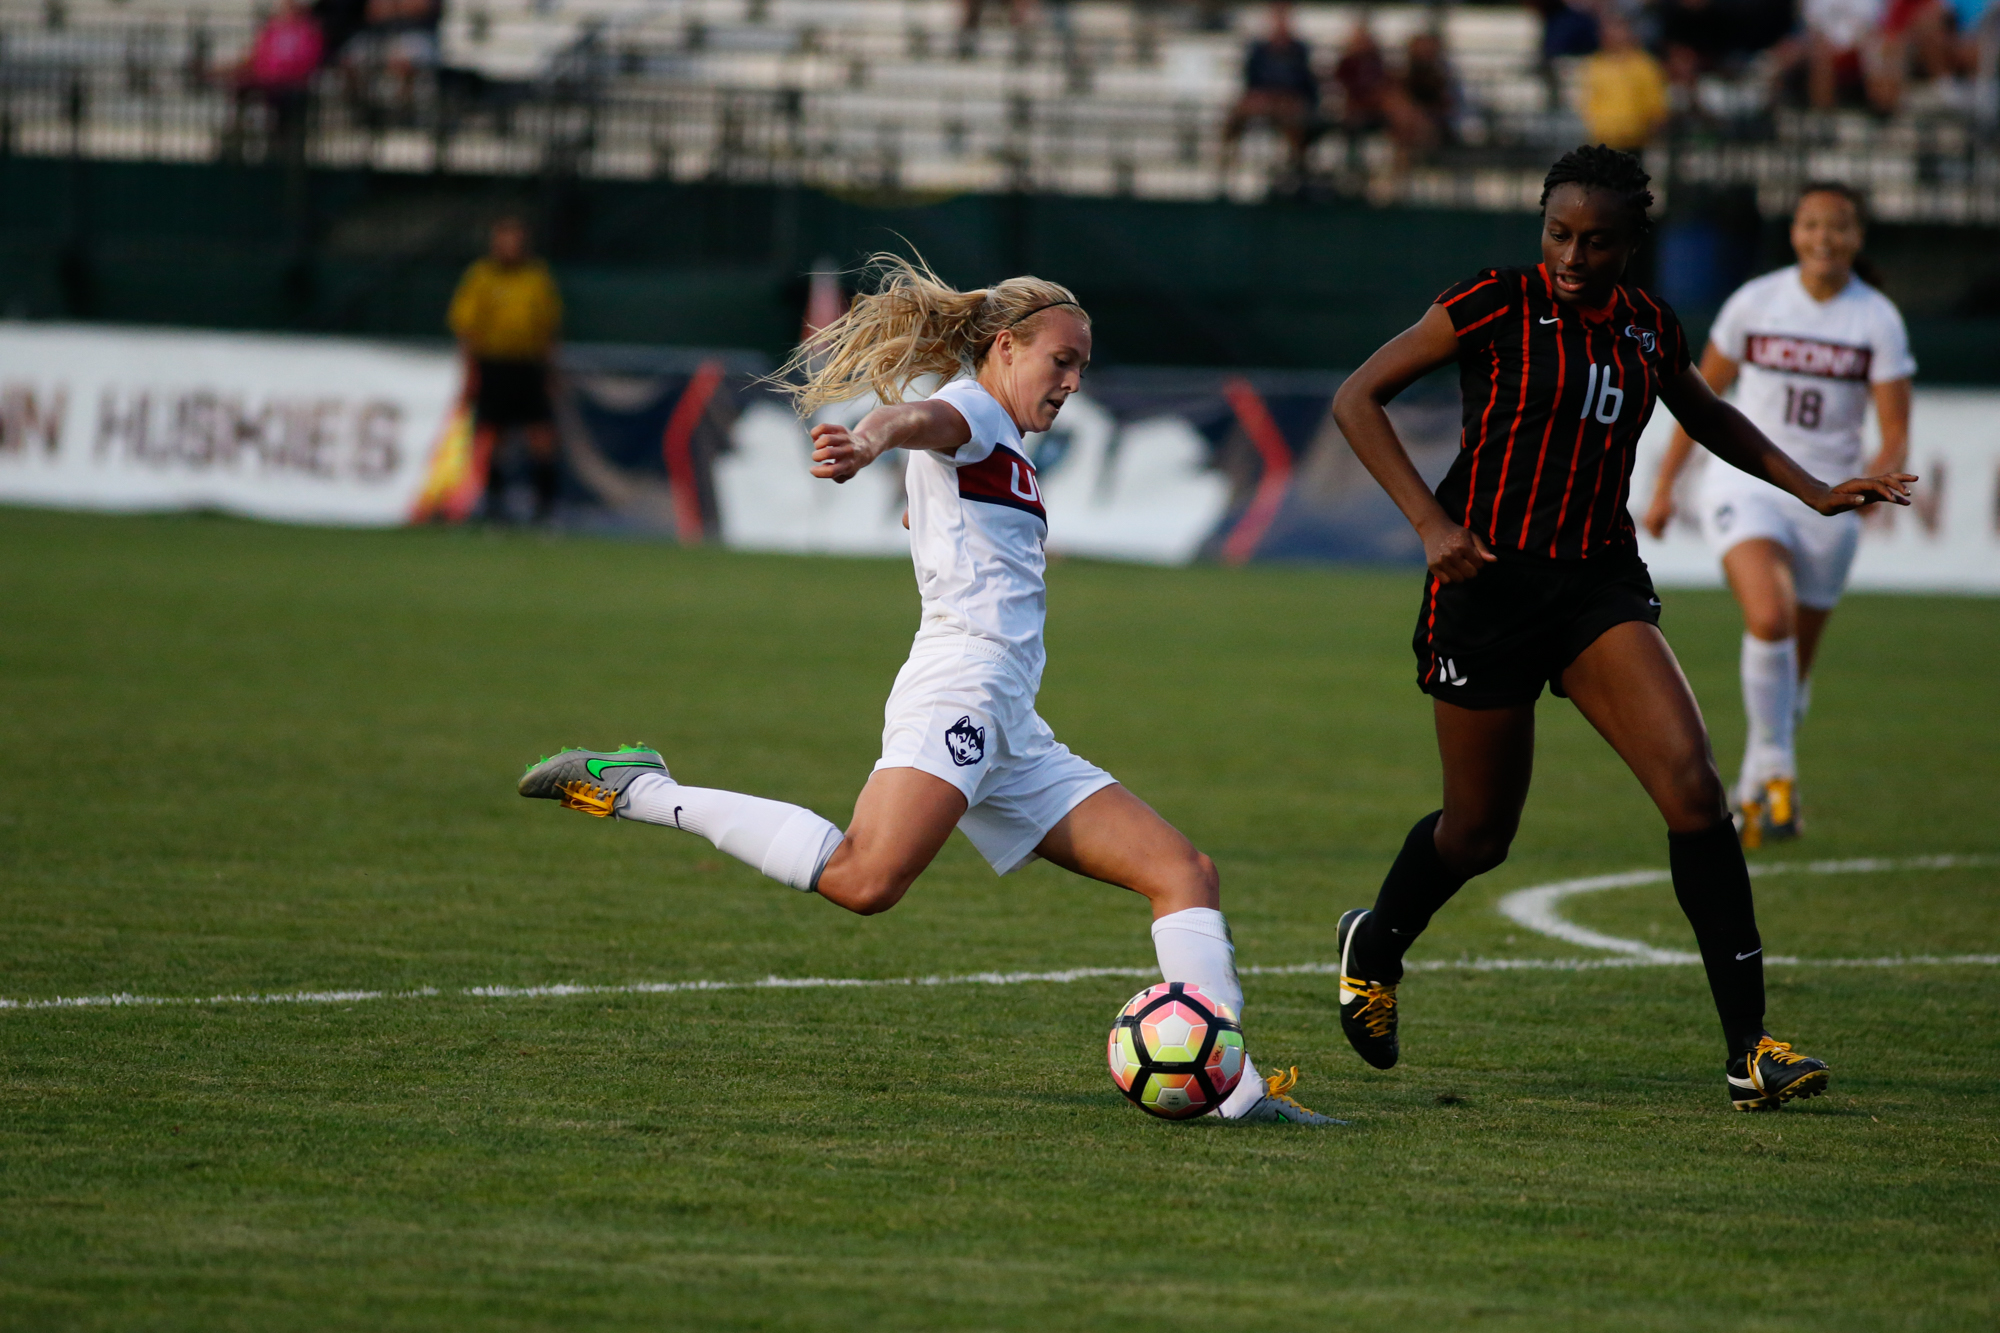 Senior forward Rachel Hill drives past a defender during the Huskies victory over Pacific on Friday, Sept. 2. (Tyler Benton/The Daily Campus)